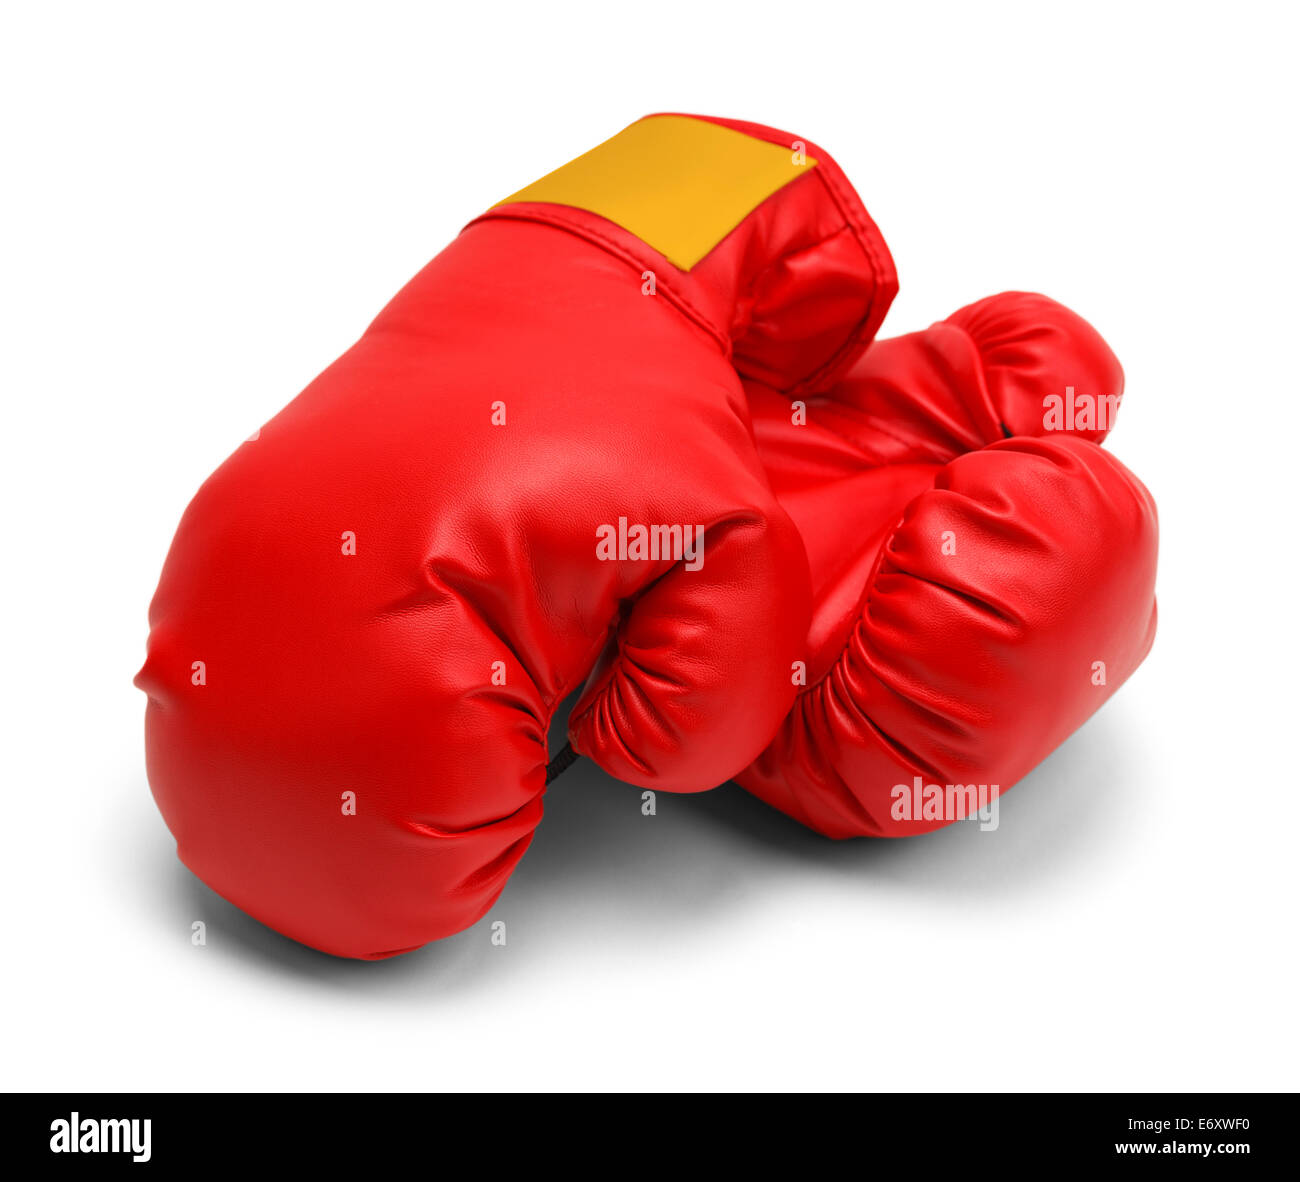 Pair of Boxing Gloves Resting Isolated on White Background. - Stock Image